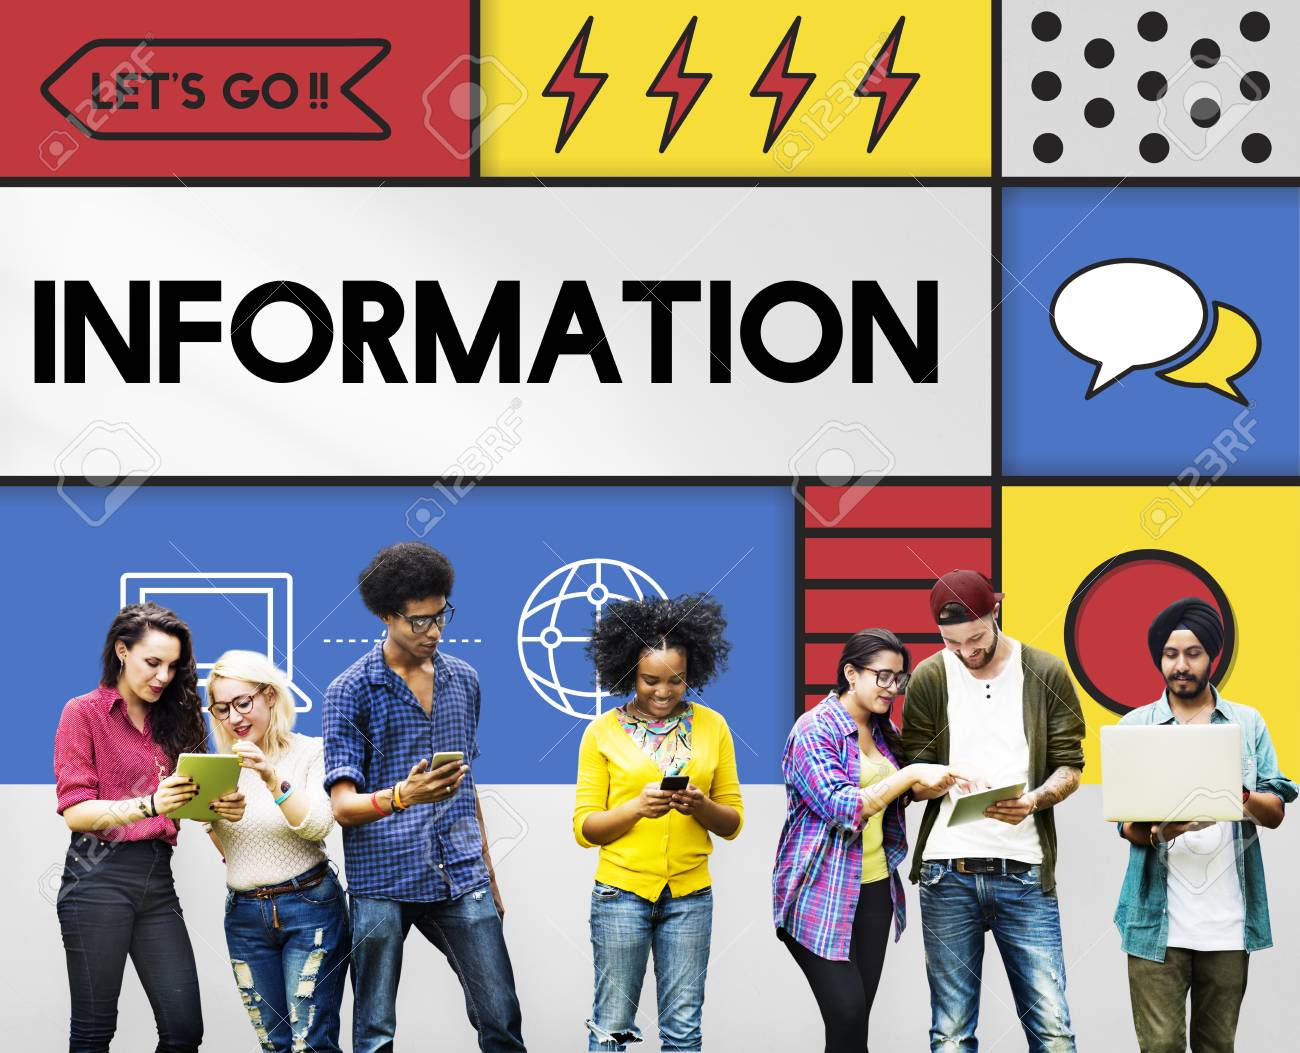 Data Information Share Knowledge Concept - 82021276